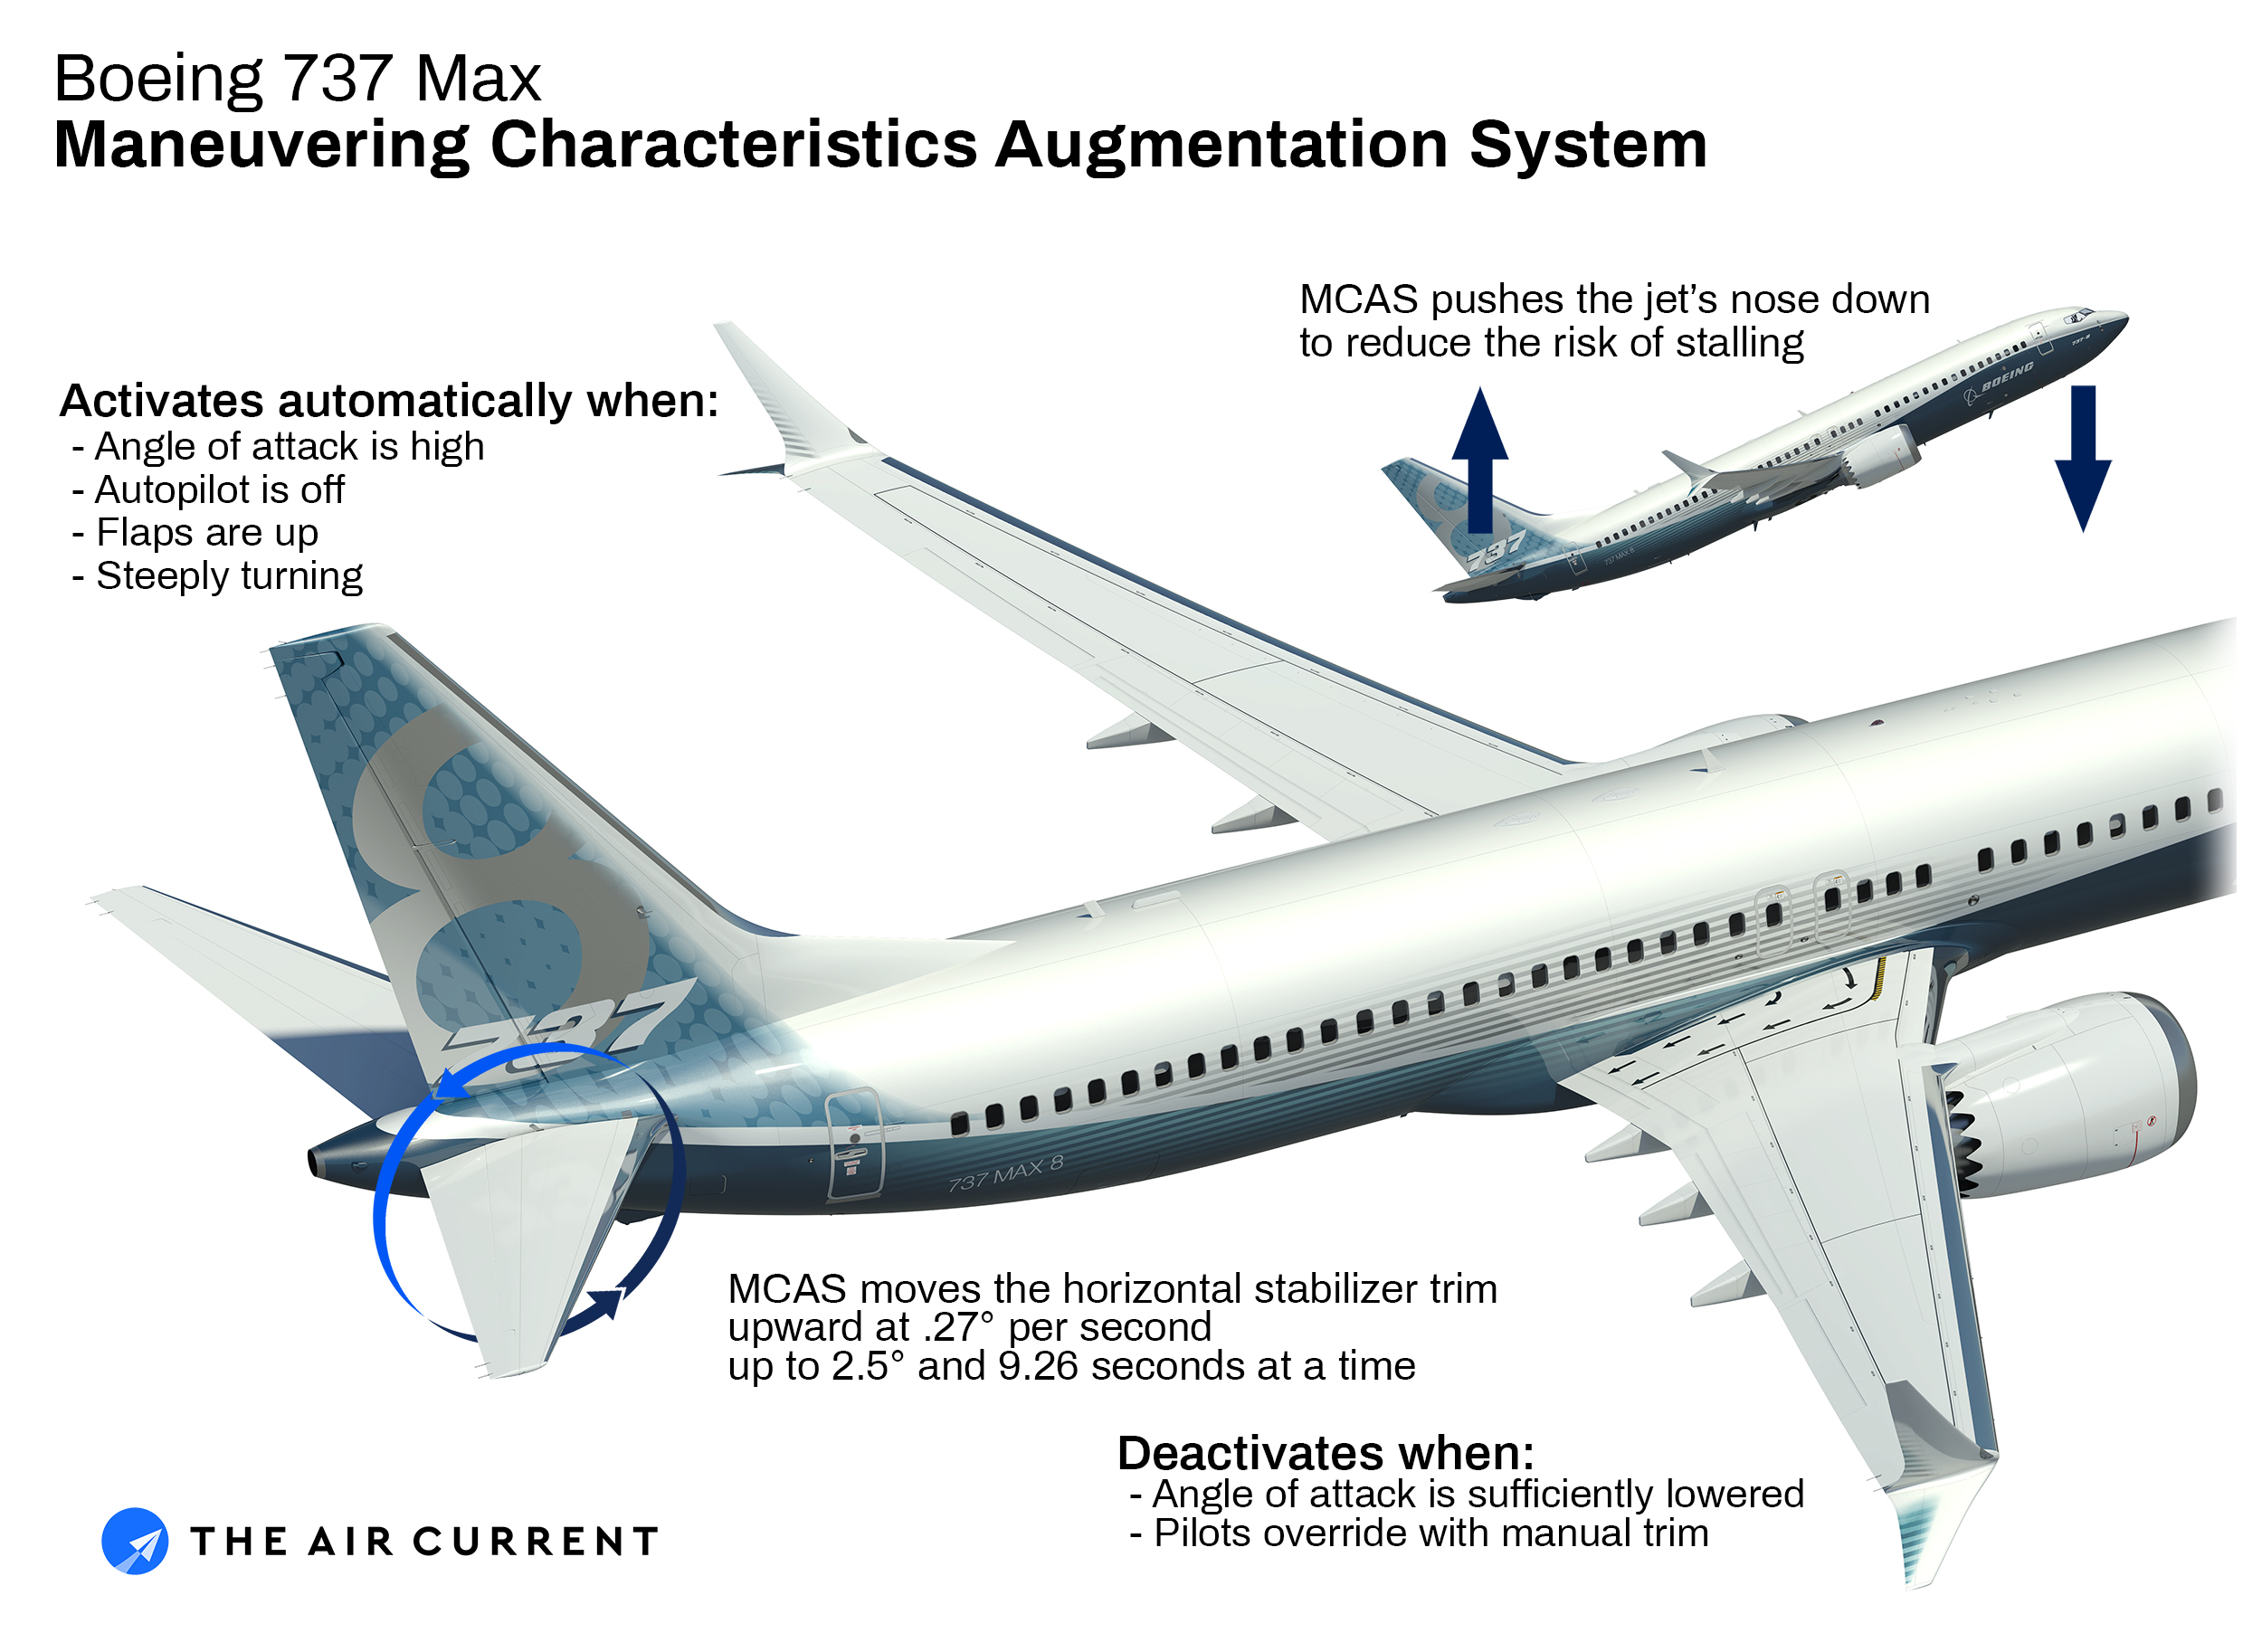 What is the Boeing 737 Max Maneuvering Characteristics